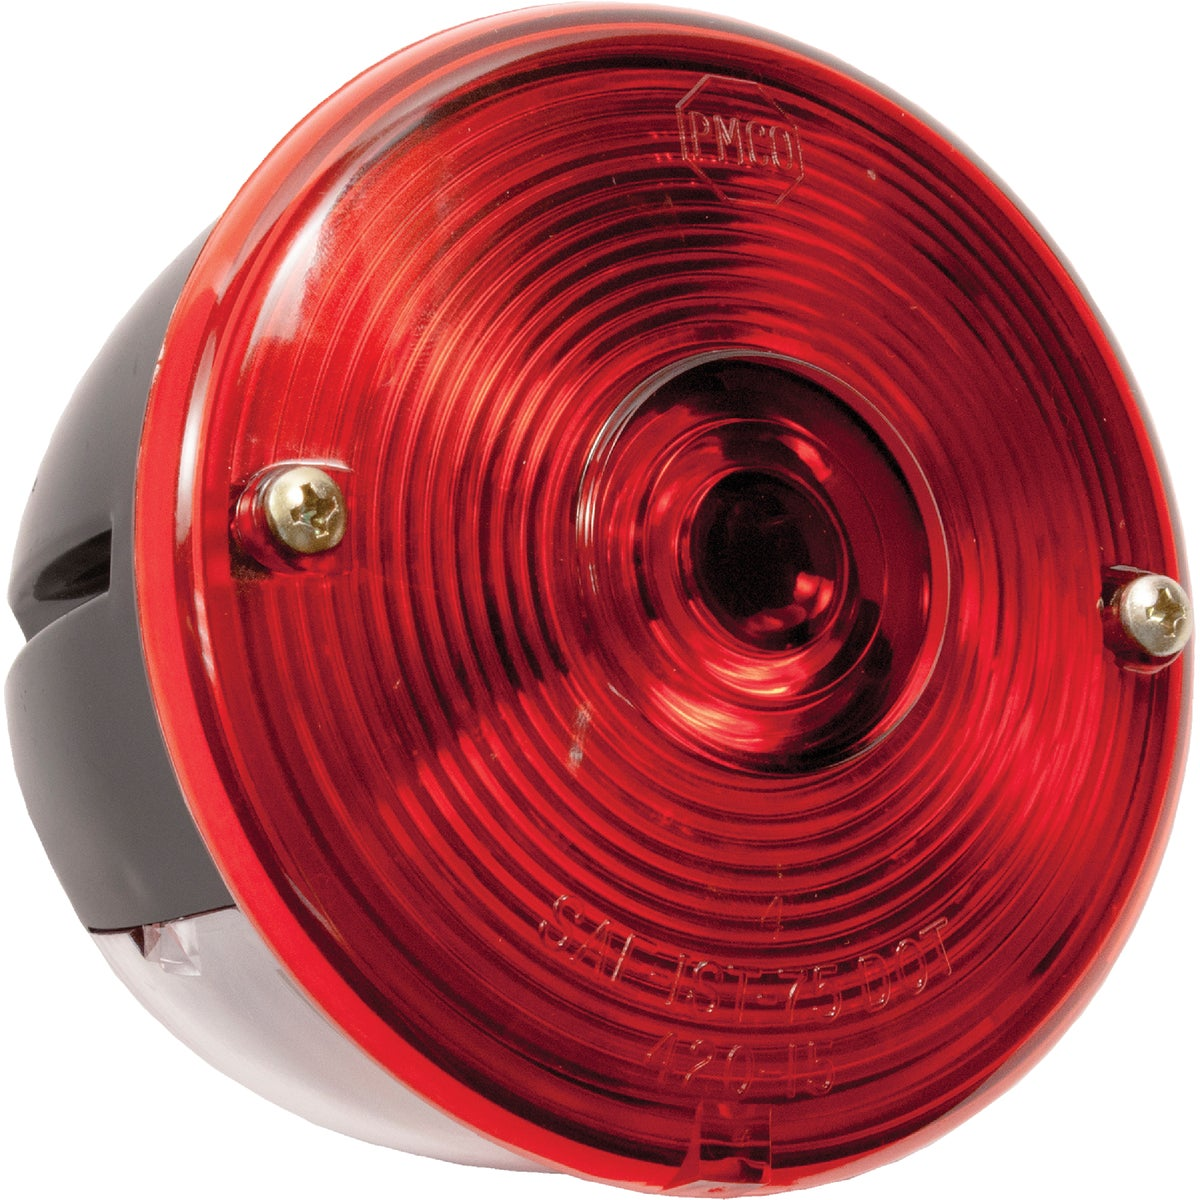 STOP & TAIL LIGHT - V428S by Peterson Mfg Co